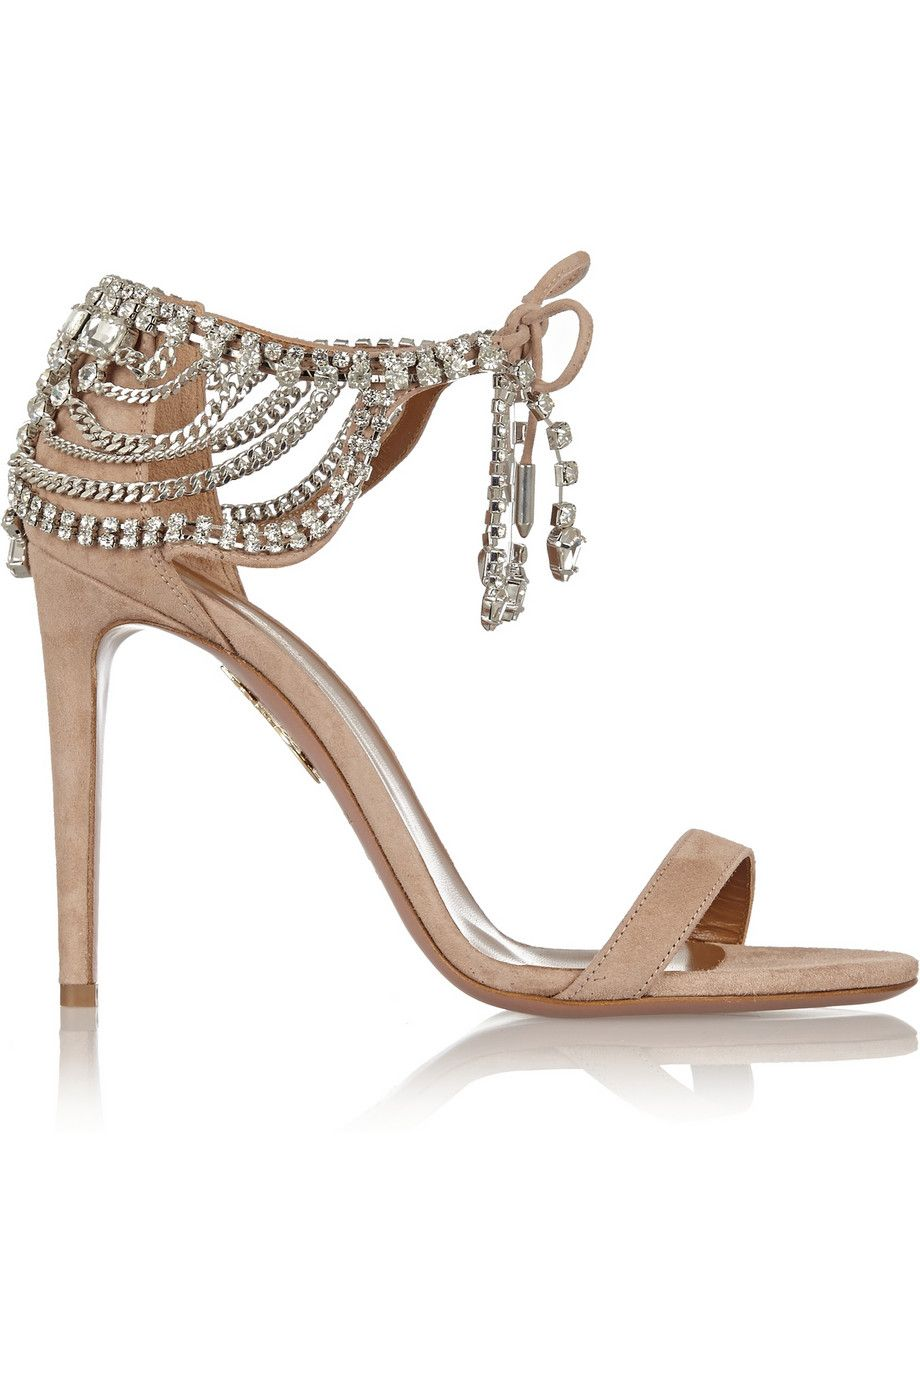 f66d3b4b7fd Crystals embellished rustic cream-pink suede  sandal by Olivia Palermo for  Aquazzura.